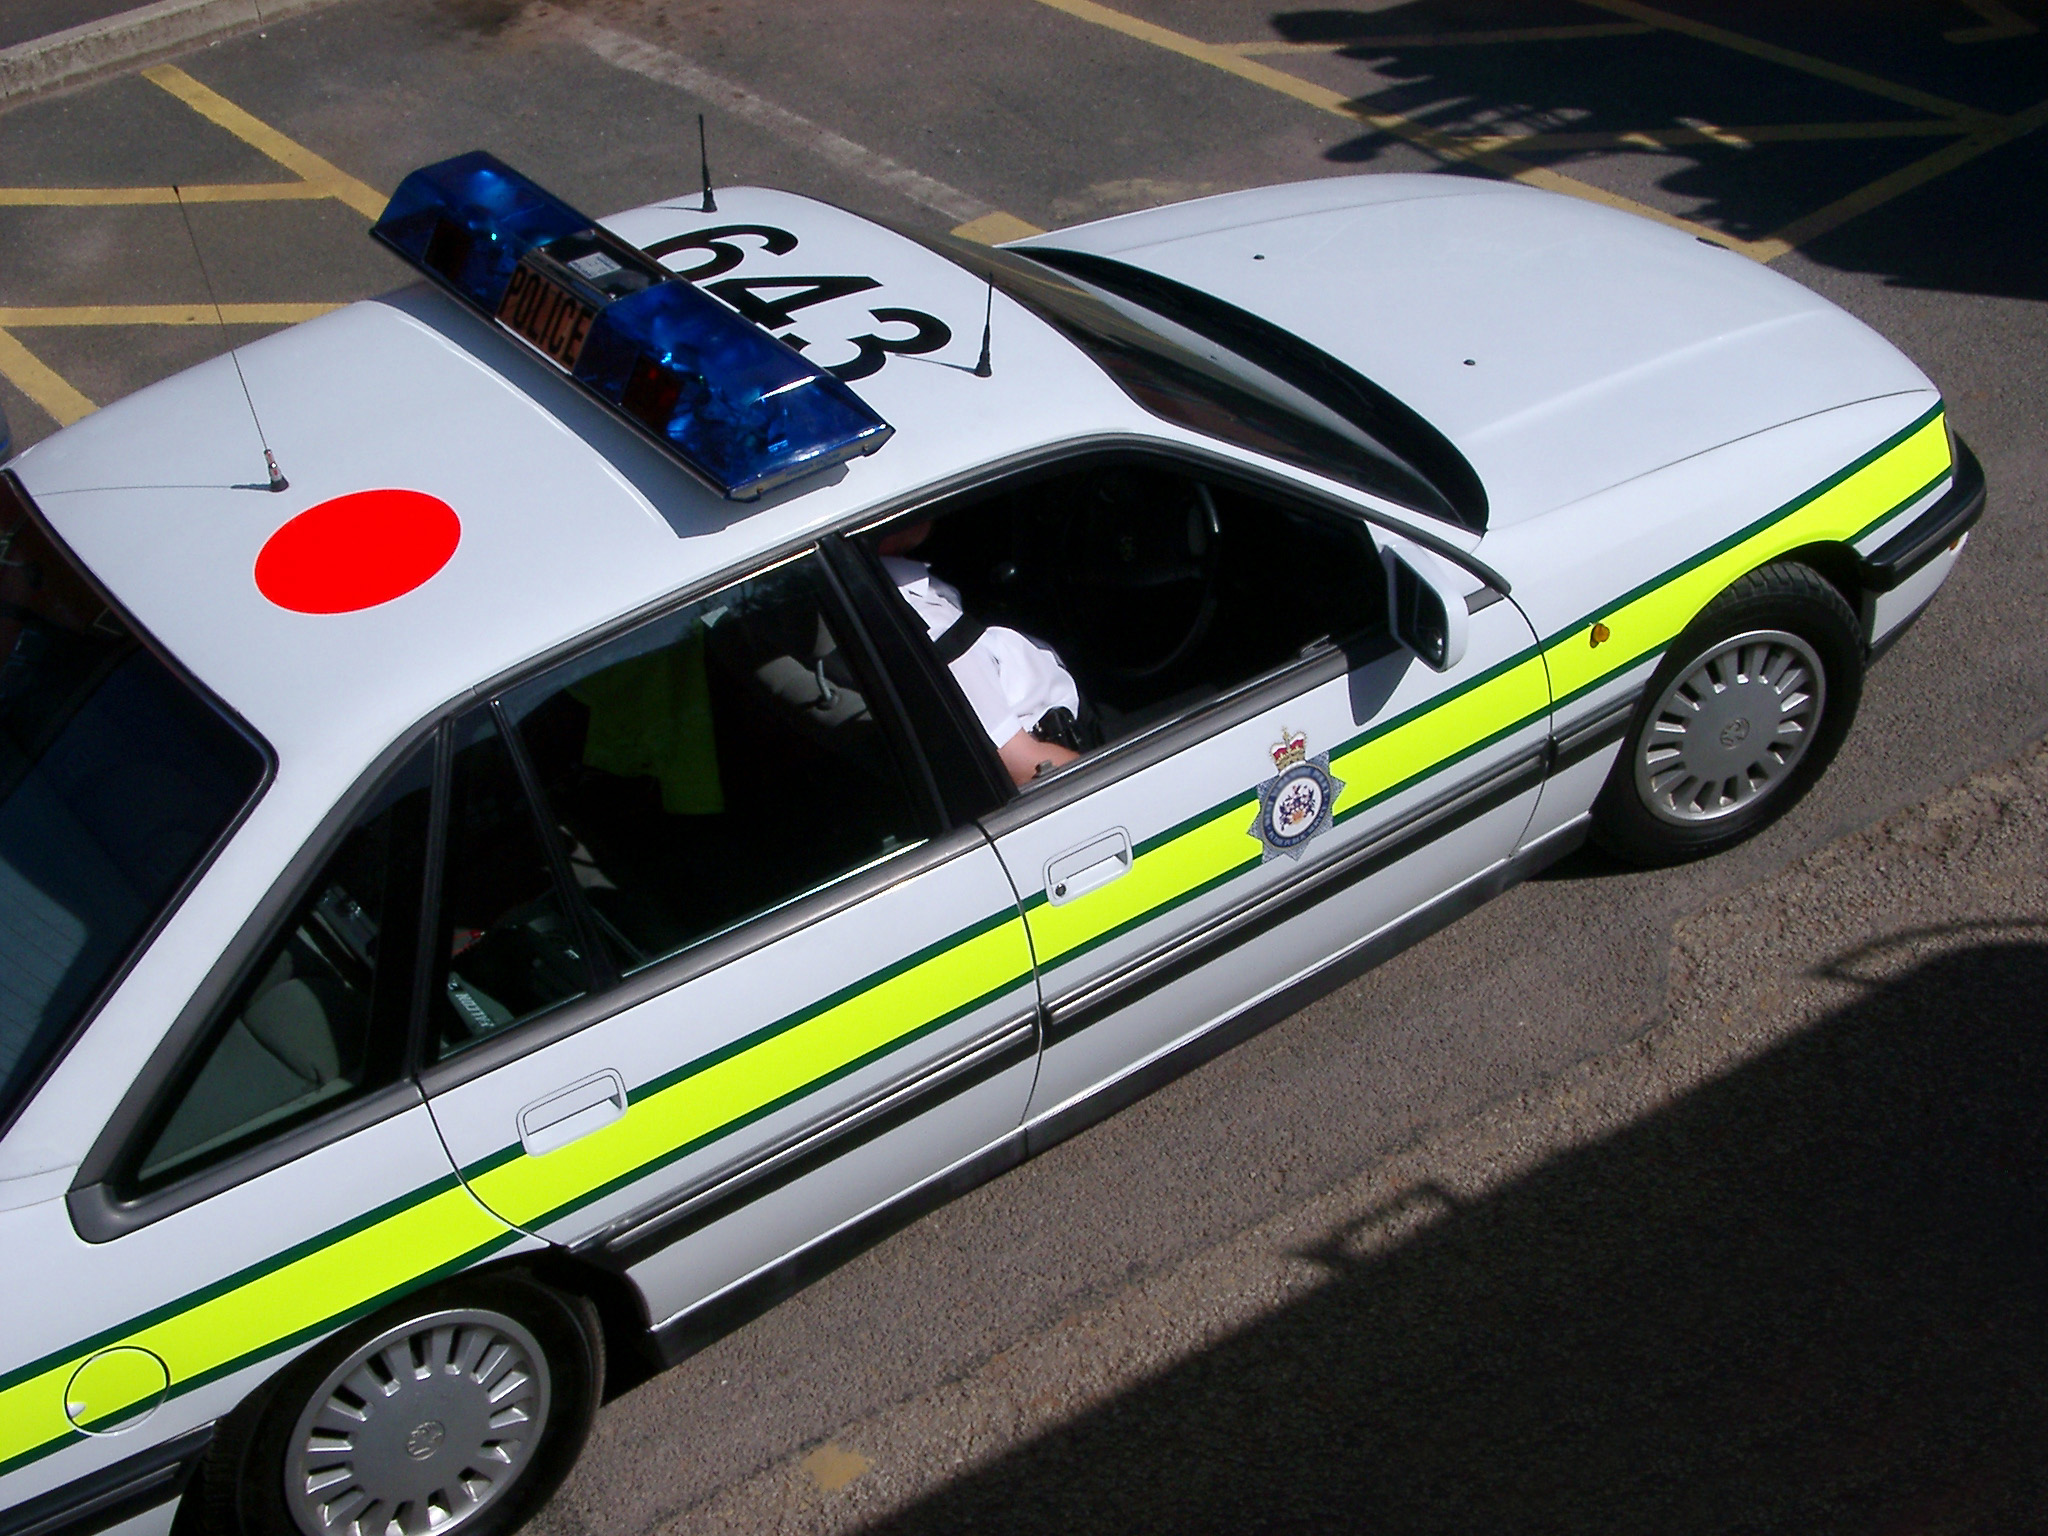 Overhead View of Police Car Showing Roof with Car Number